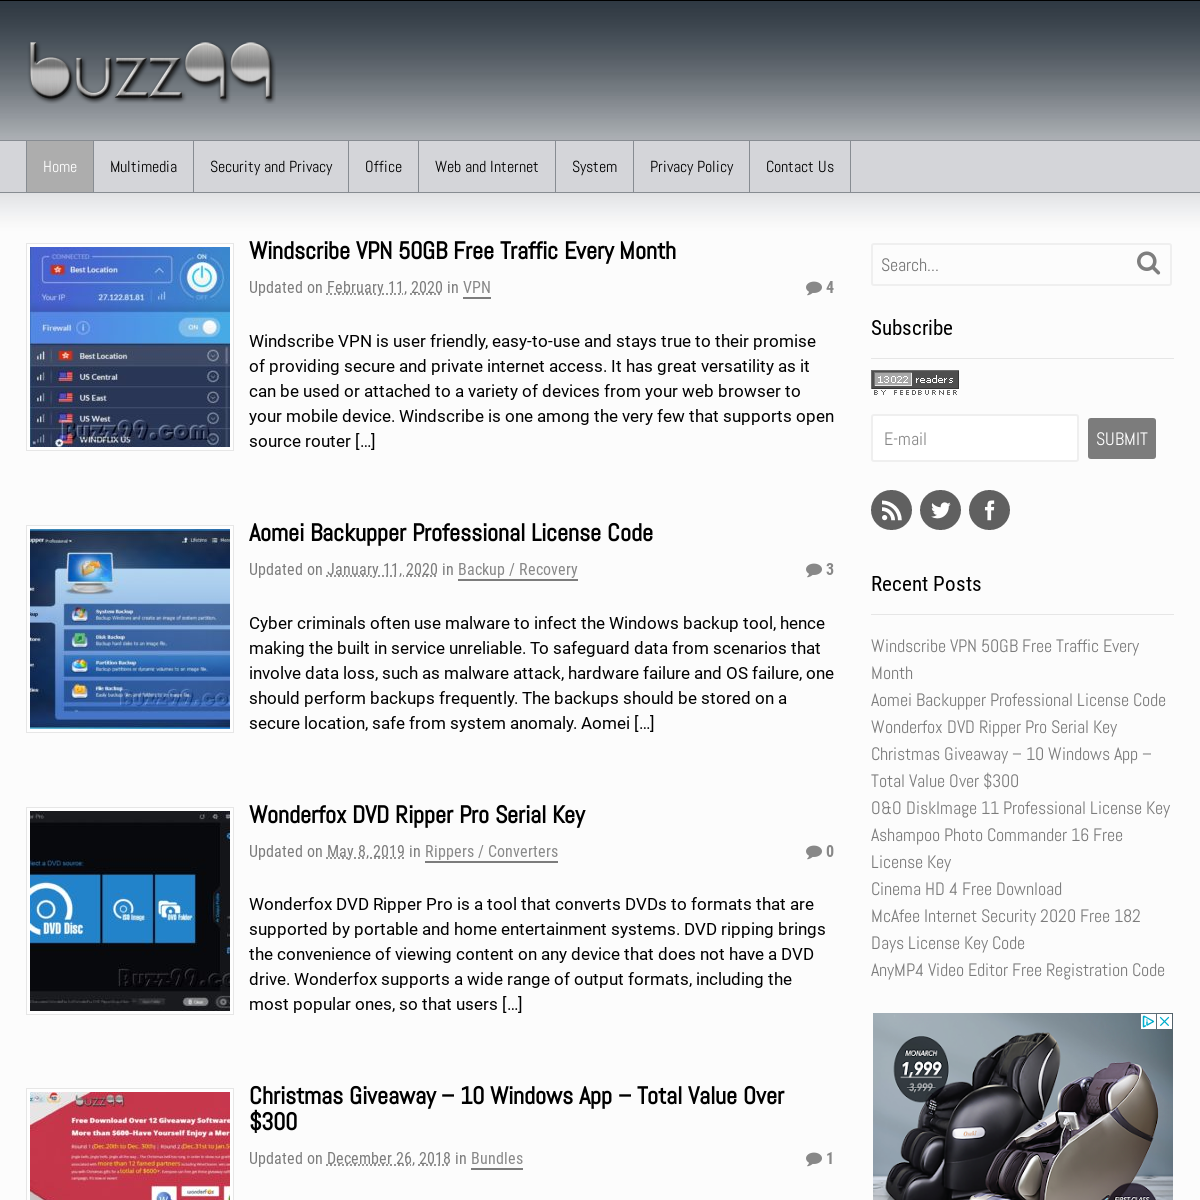 Buzz99 - Giveaways, Promos, and Best Software Deals